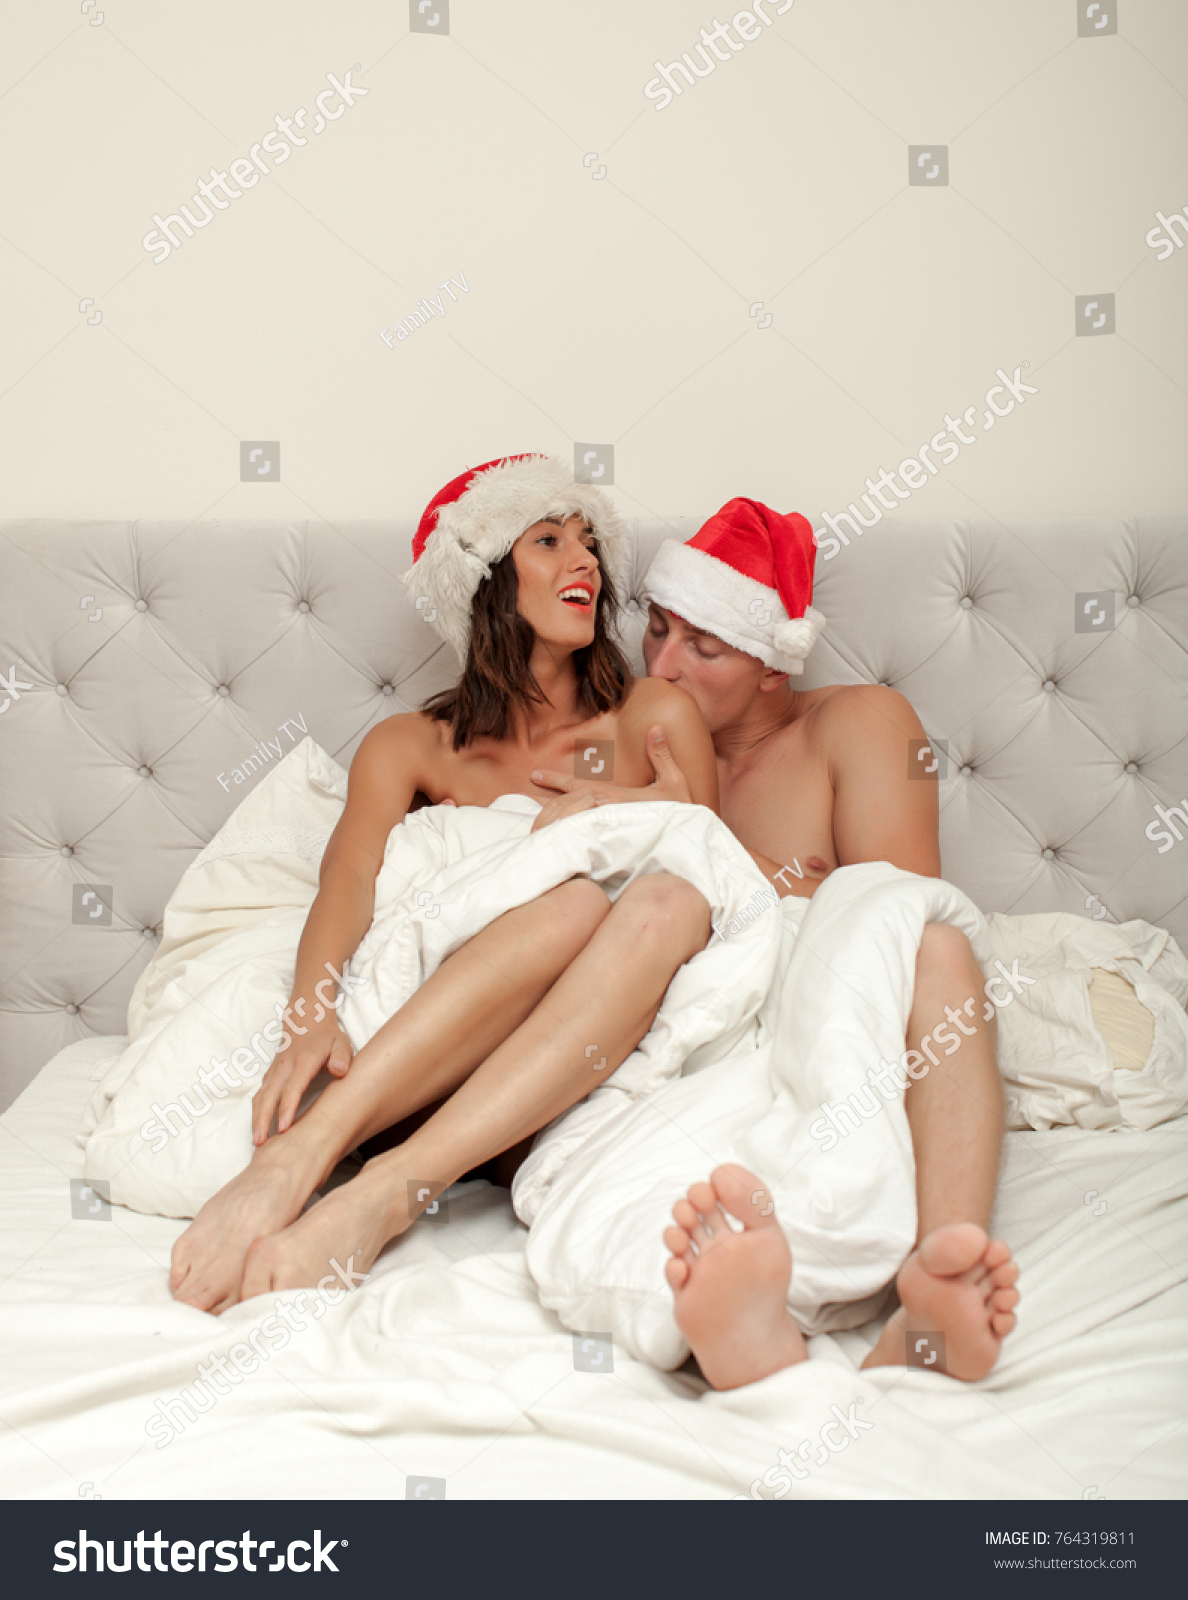 sexy woman having sex santa claus stock photo & image (royalty-free